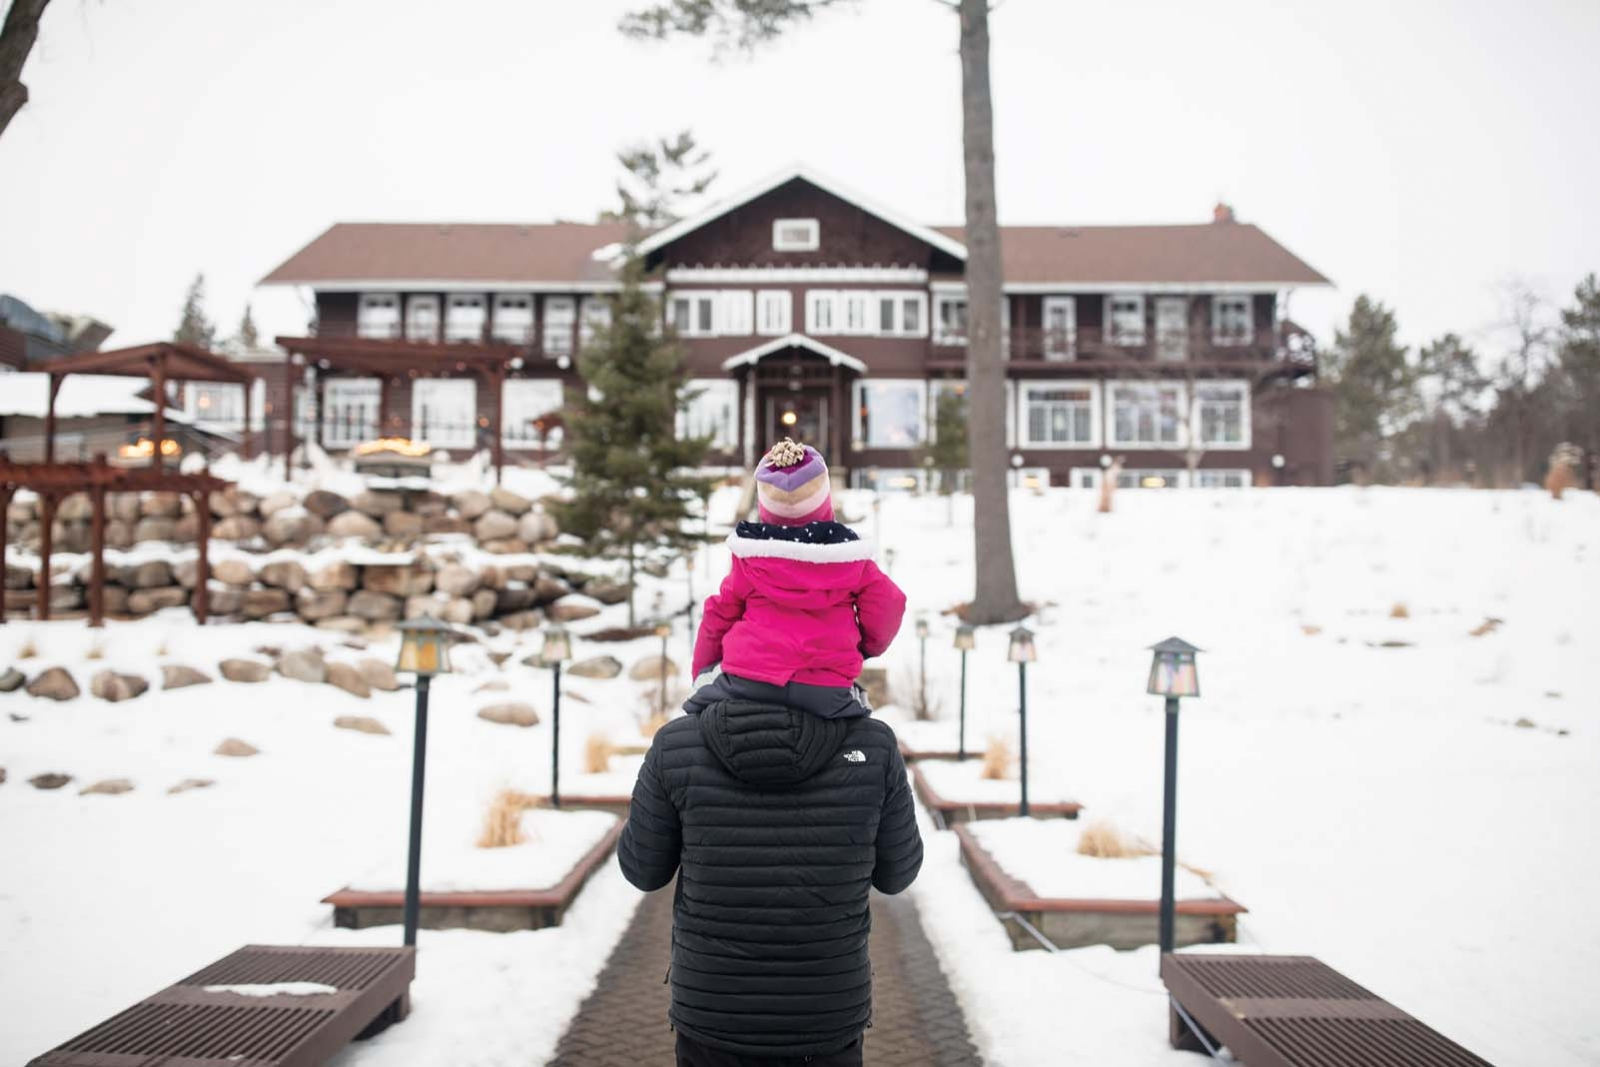 A dad and his daughter walking into Grandview Lodge.